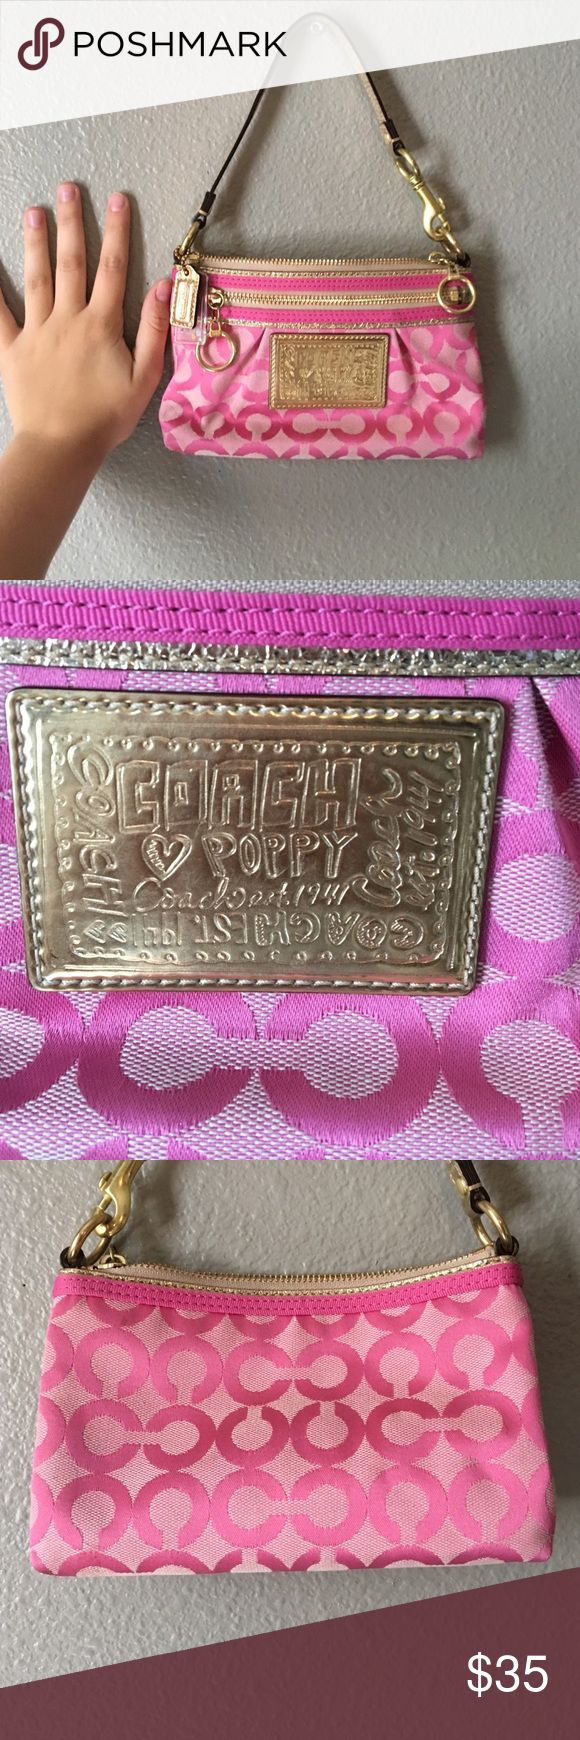 Small Pink Coach Purse Really cute purse, got it when I was like 10 so it does have some small lipstick stains on the inside but other then that it's in very good shape, good purse for younger girls or just for a downsize, 100% authentic Coach Bags Satchels